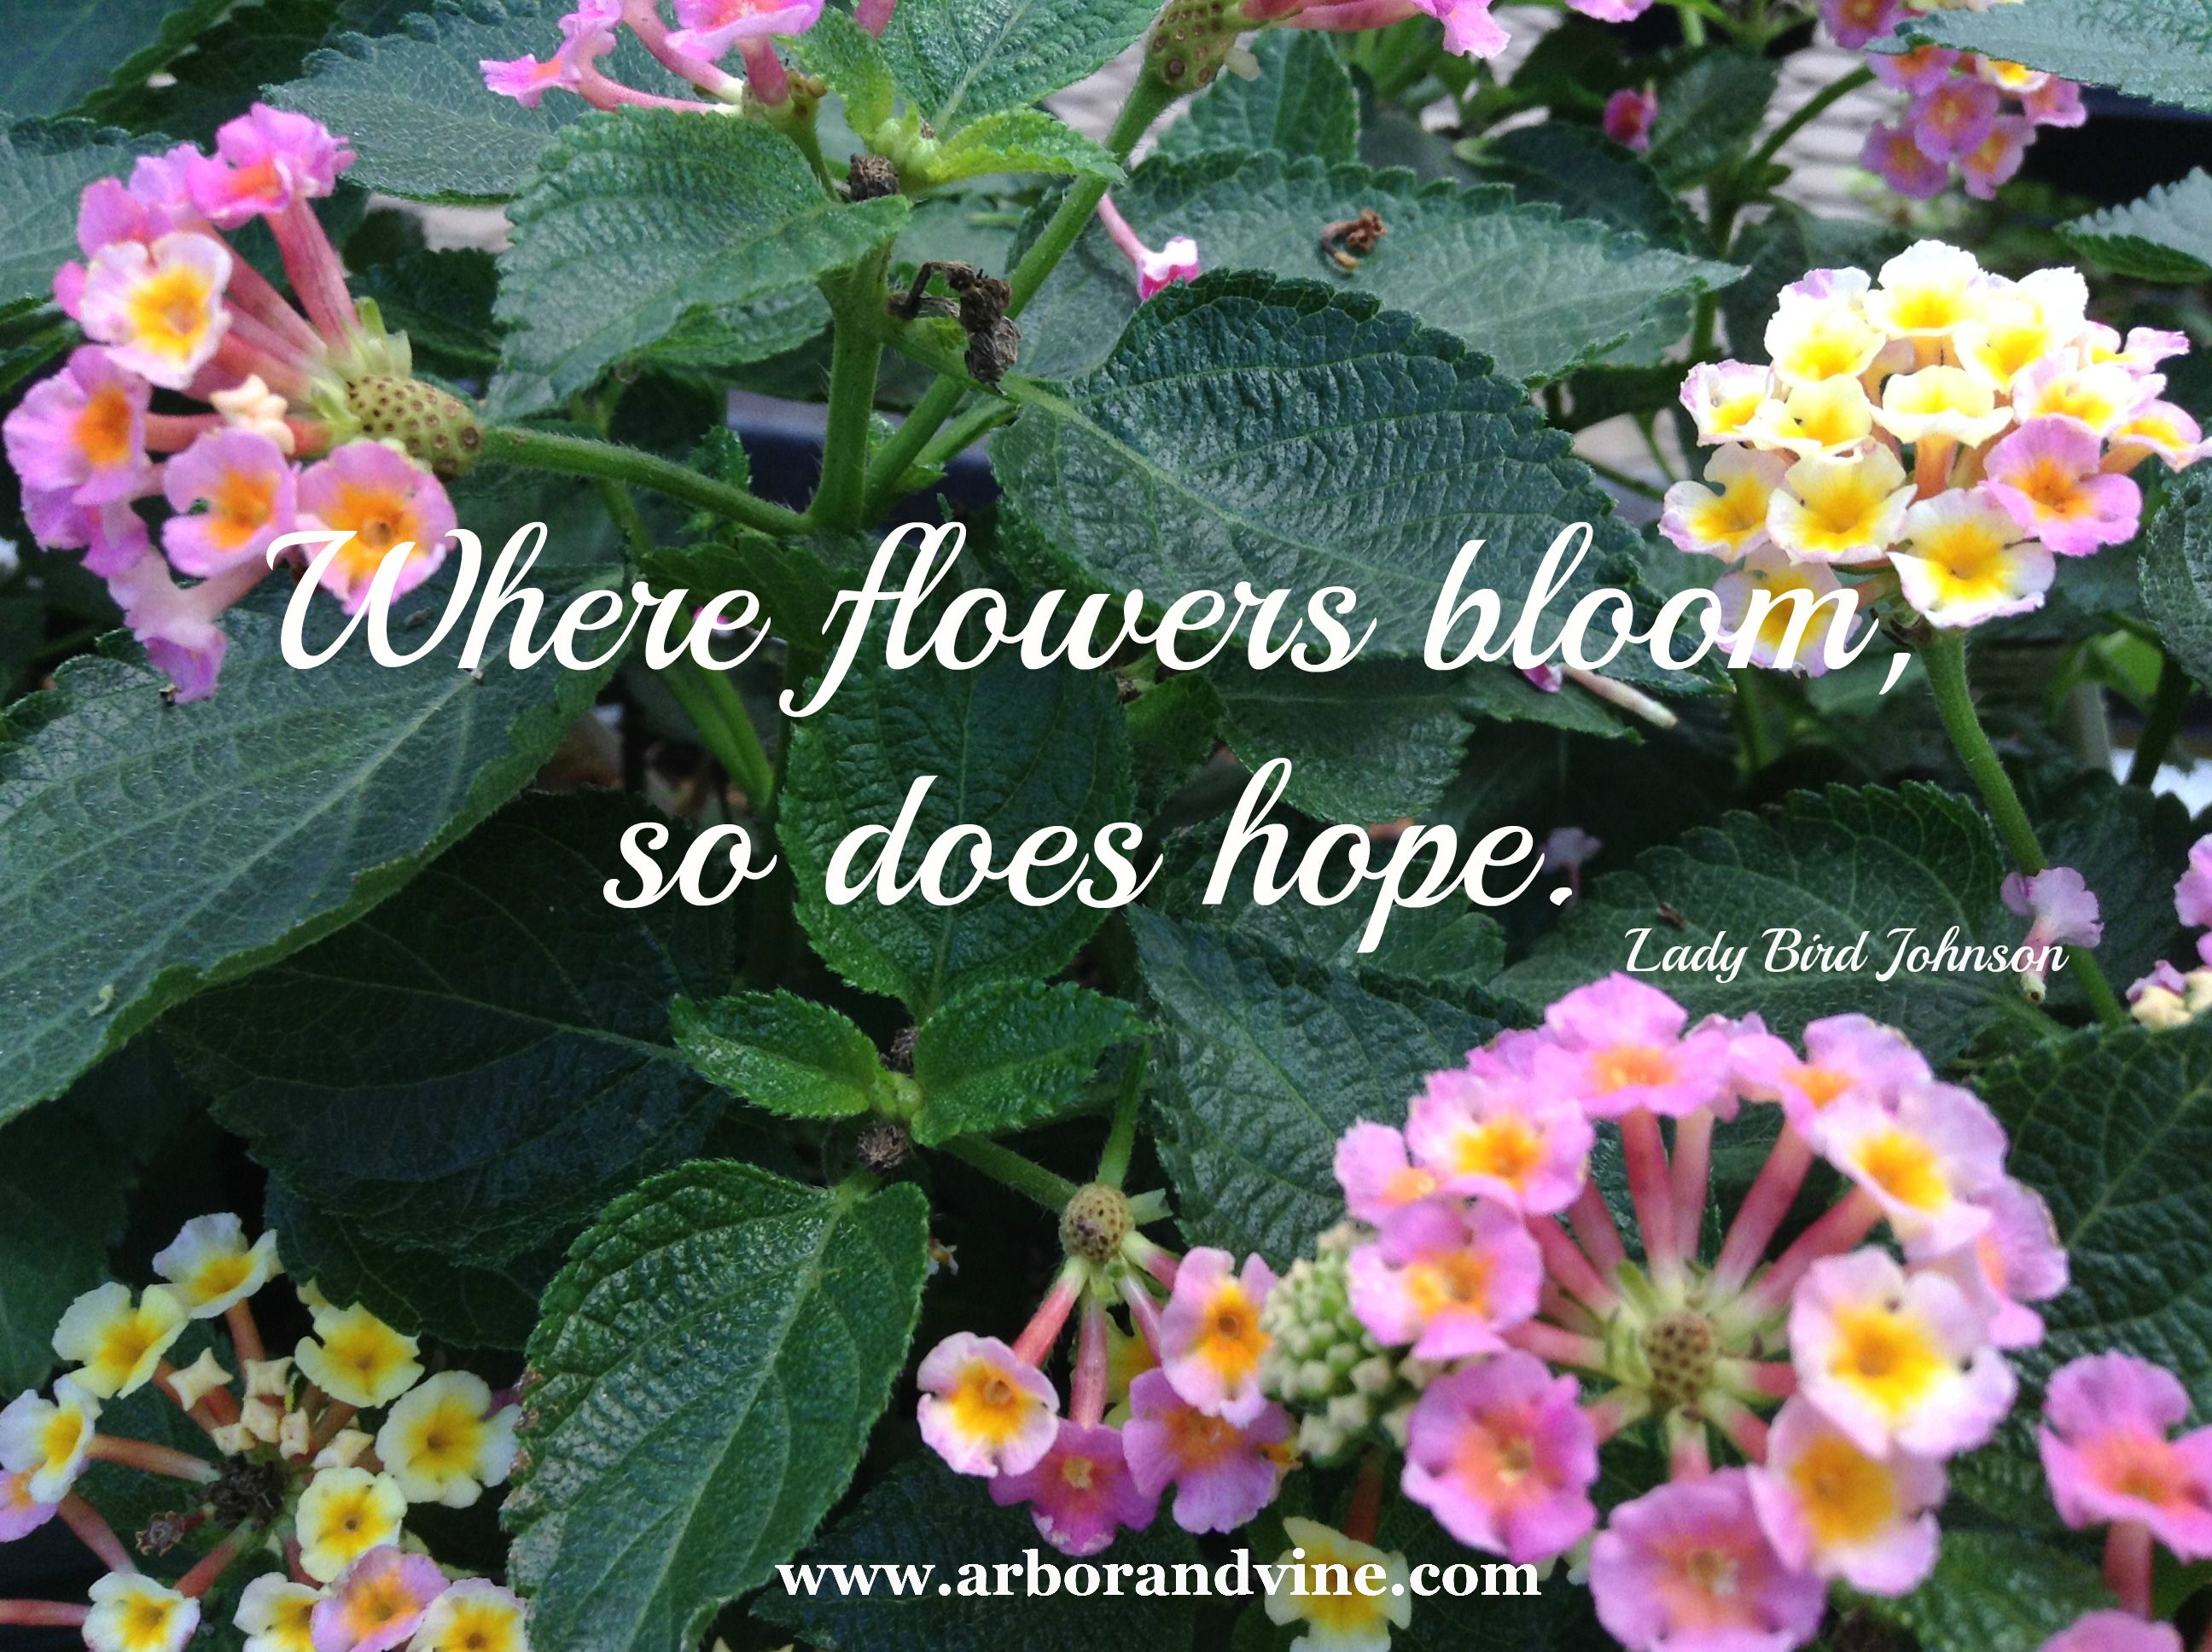 Pin By Arbor And Vine On Garden Humor Quotes Poems Flower Quotes Garden Poems Gardening Humor